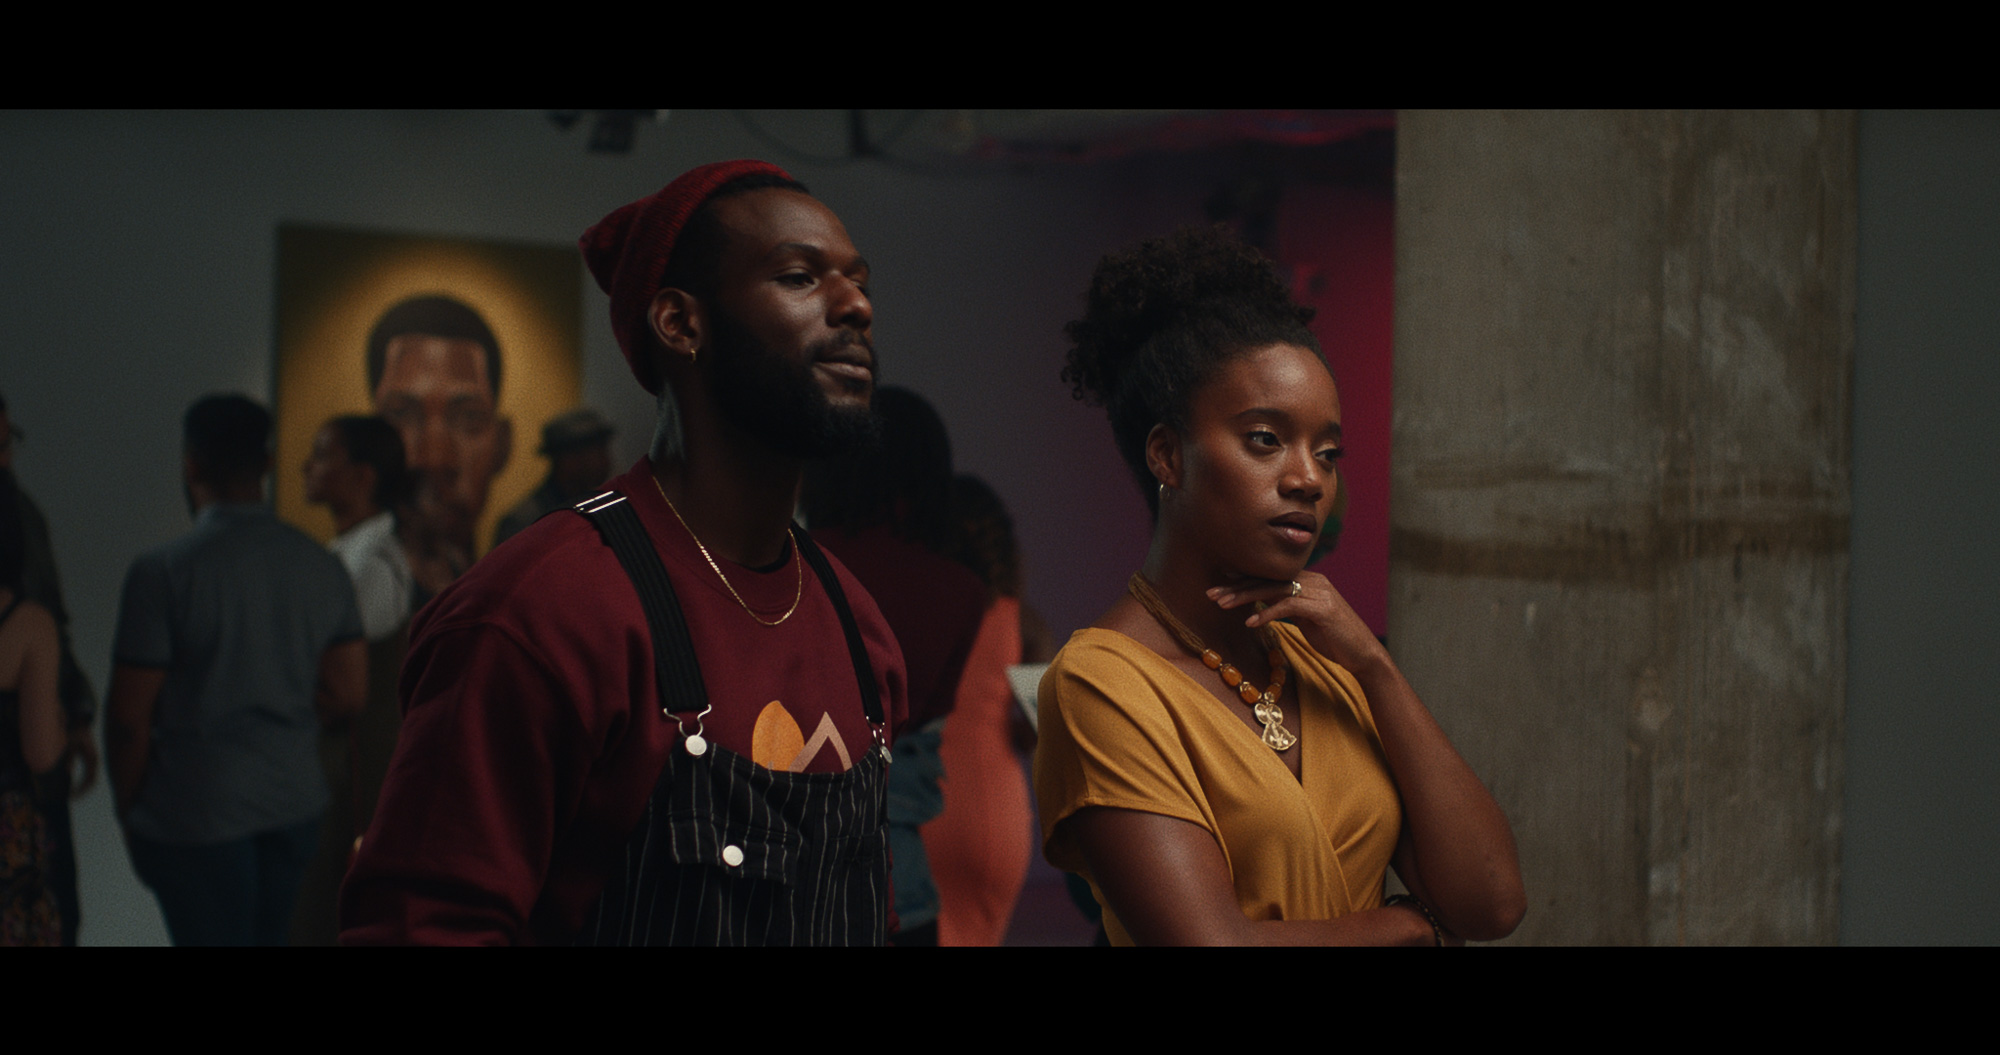 The Cast of 'Really Love' Breakdown Being Black Creatives & More